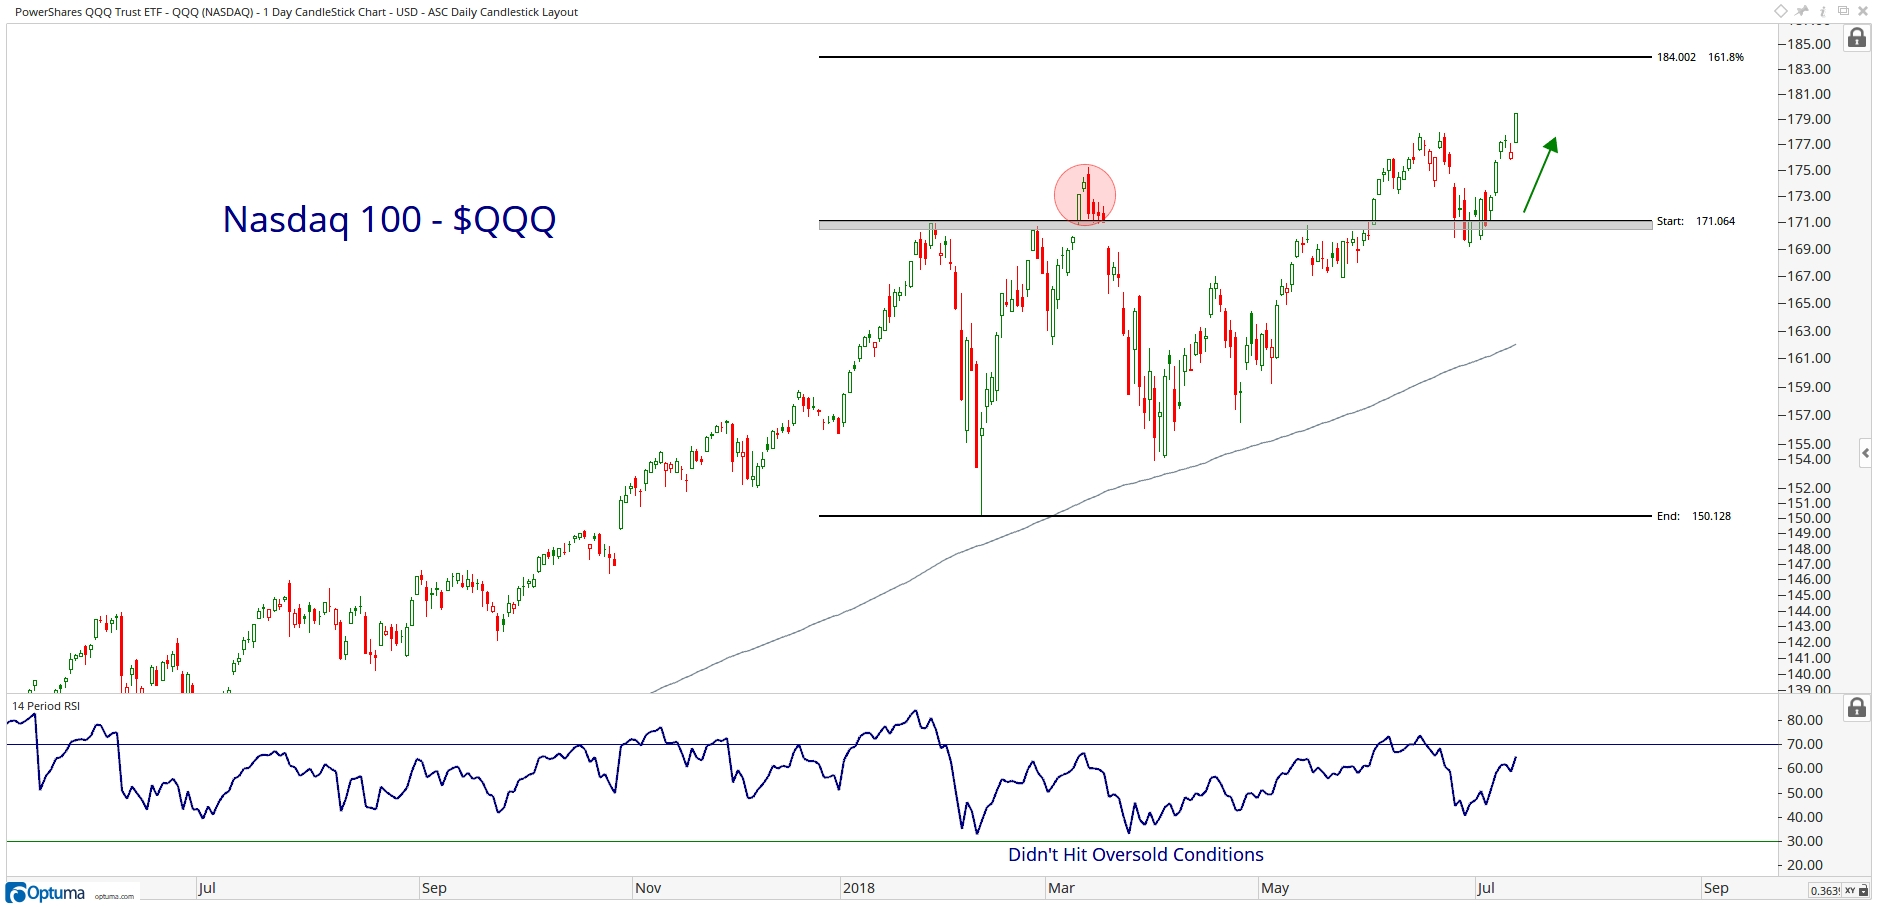 Nasdaq 100 Stocks Breaking Out - All Star Charts -